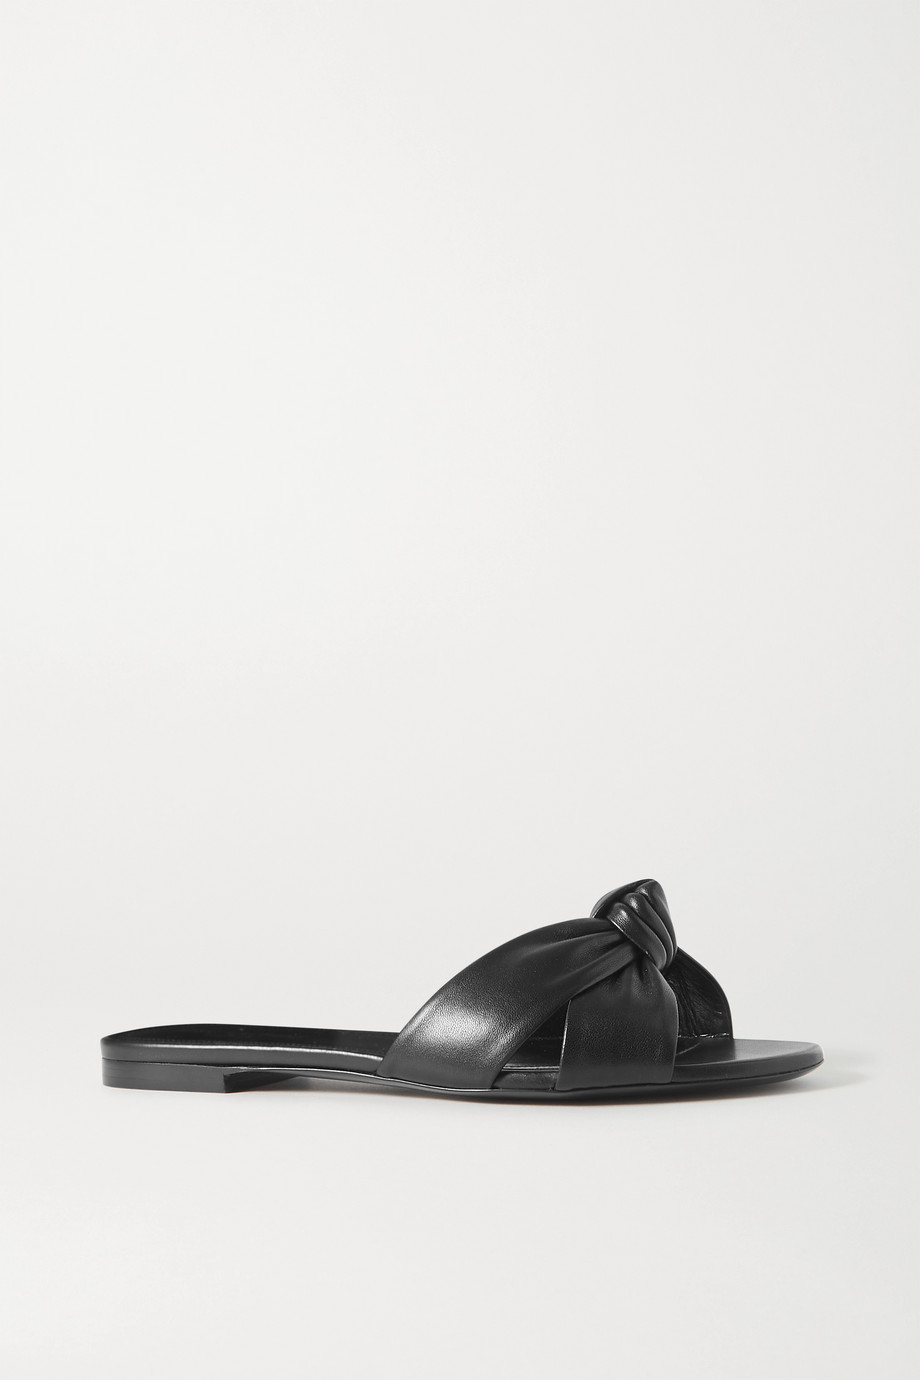 SAINT LAURENT Power knotted leather slides